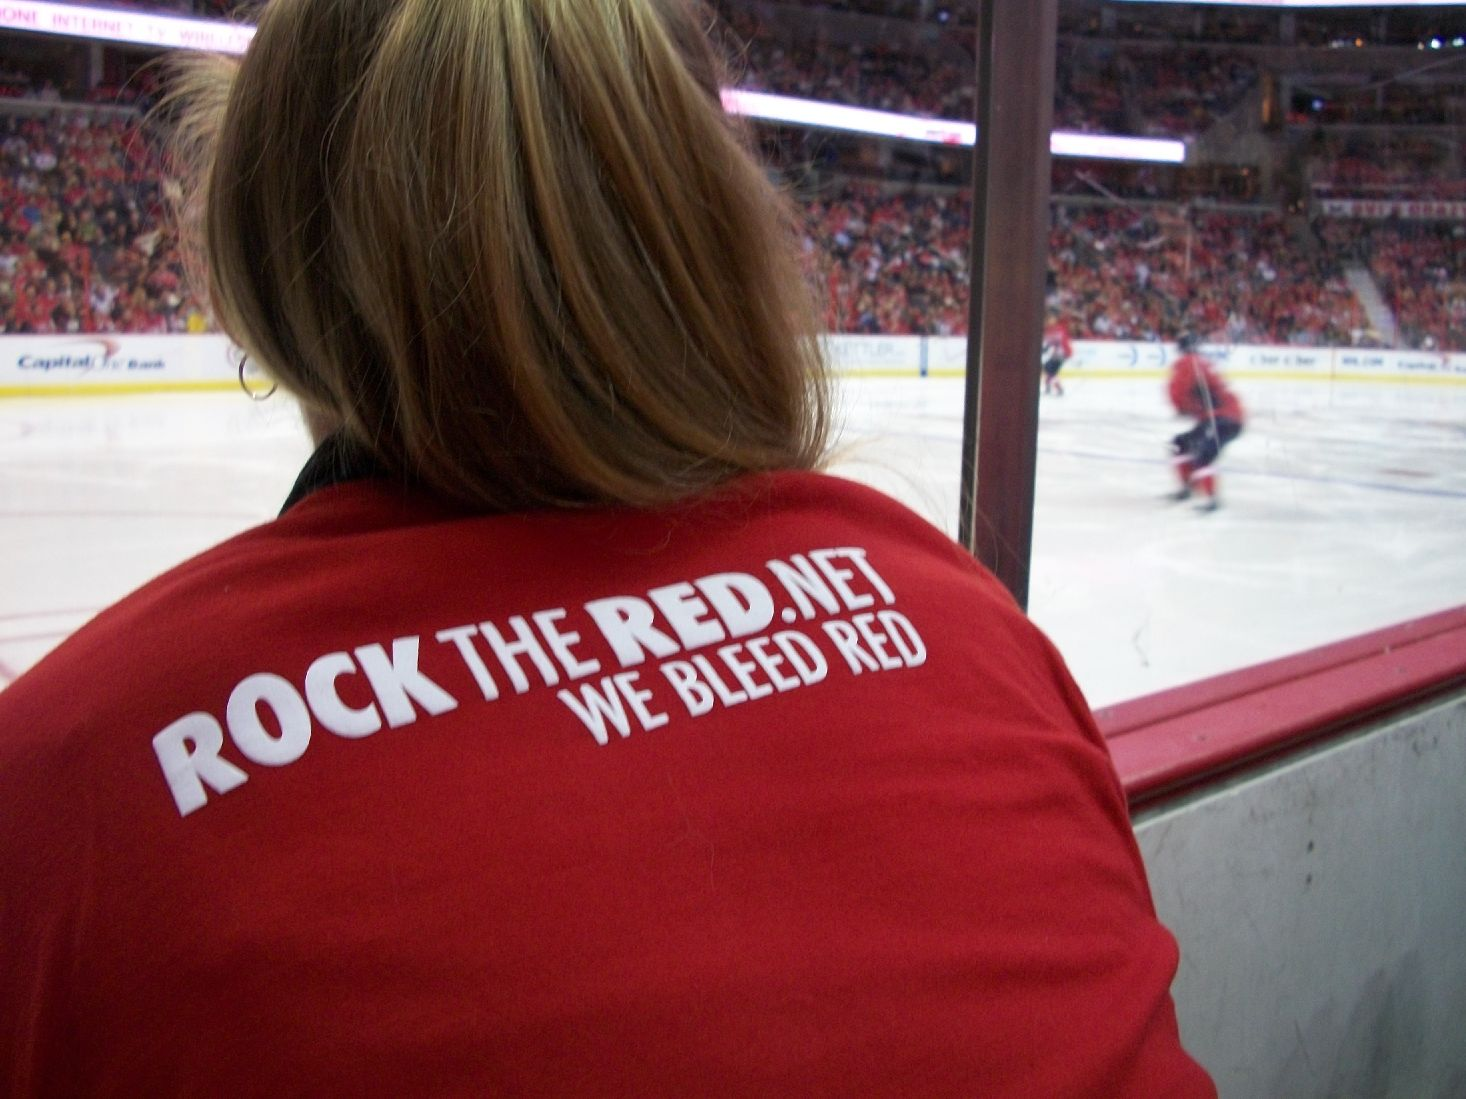 rockthered_shirt